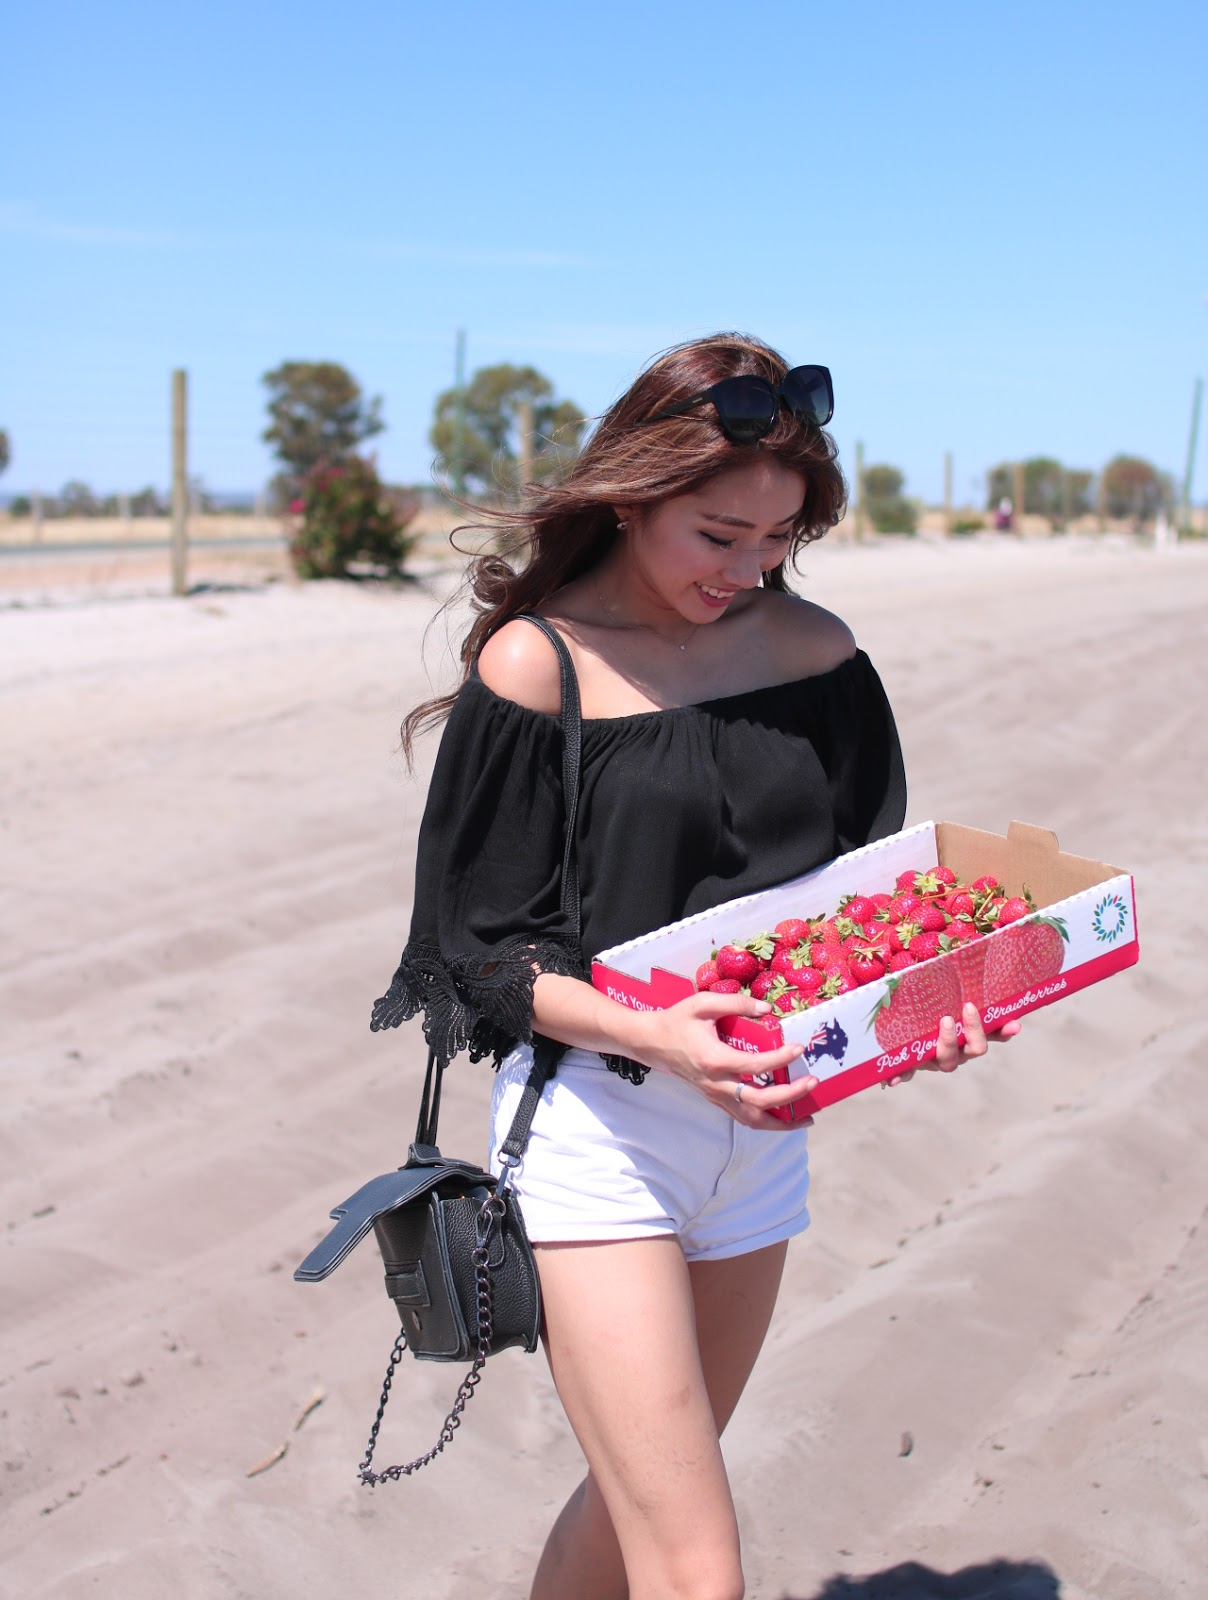 bullsbrook, strawberry, farm, perth, australia